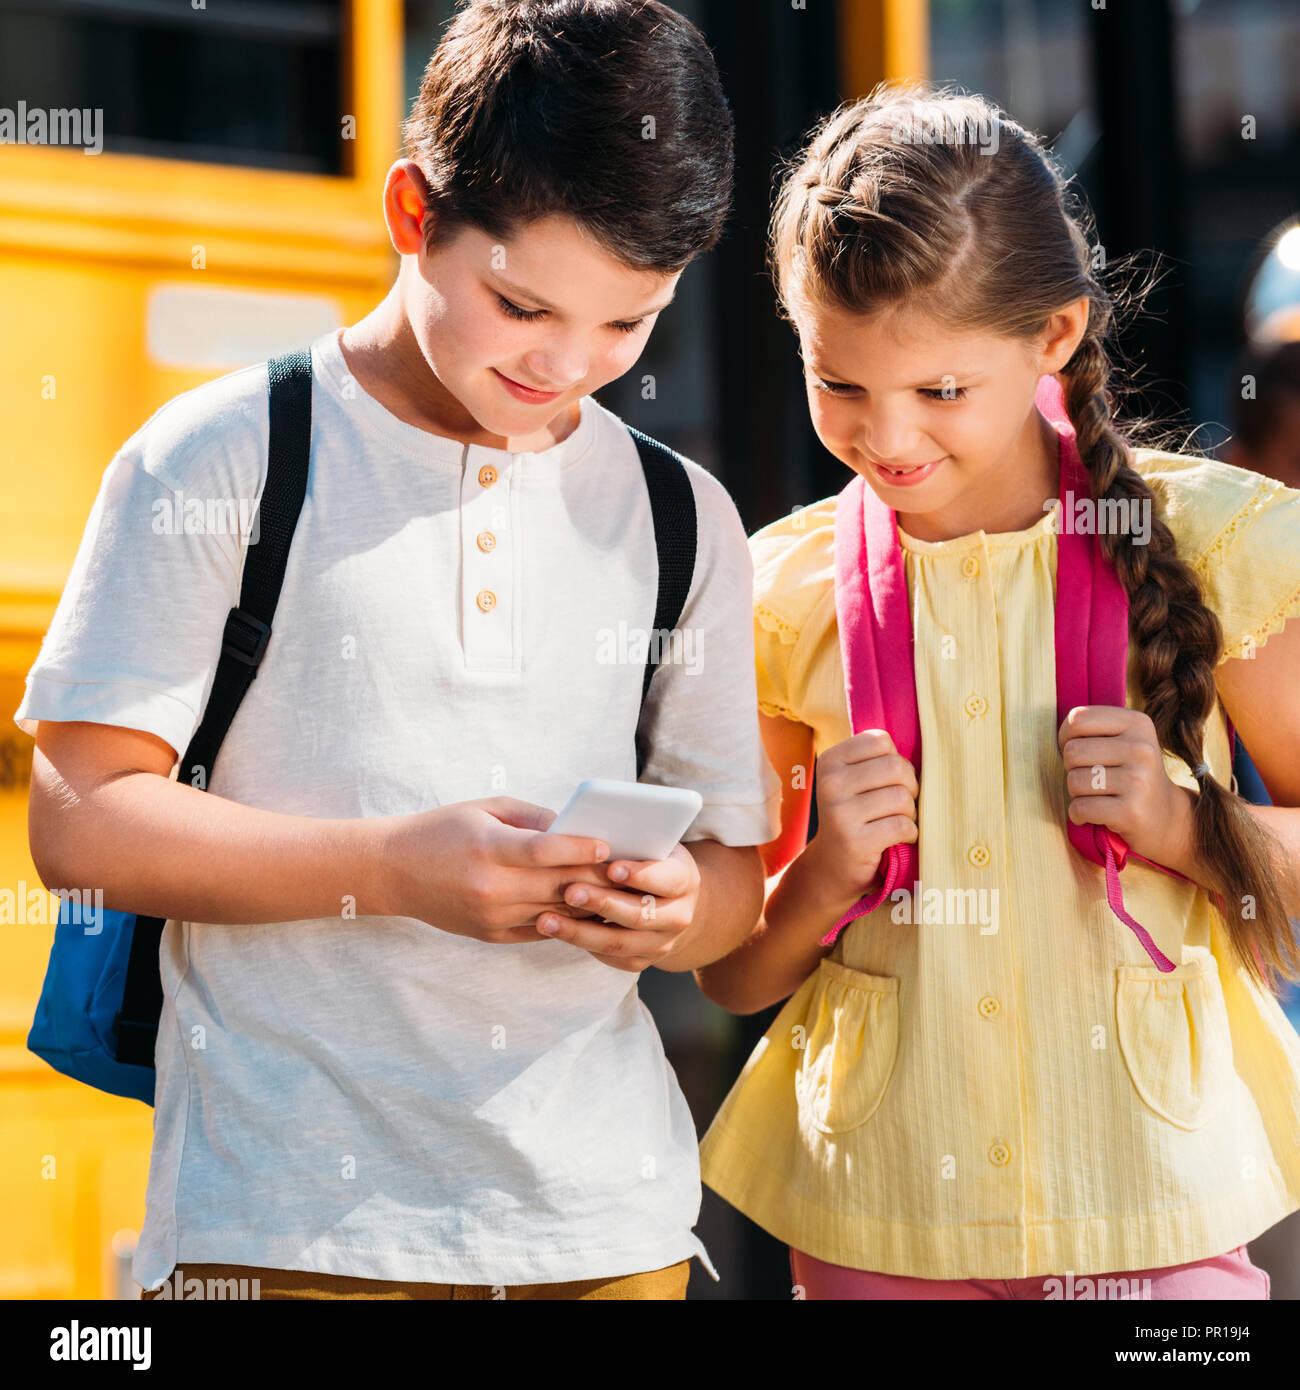 happy little scholars using smartphone together in front of school bus - Stock Image